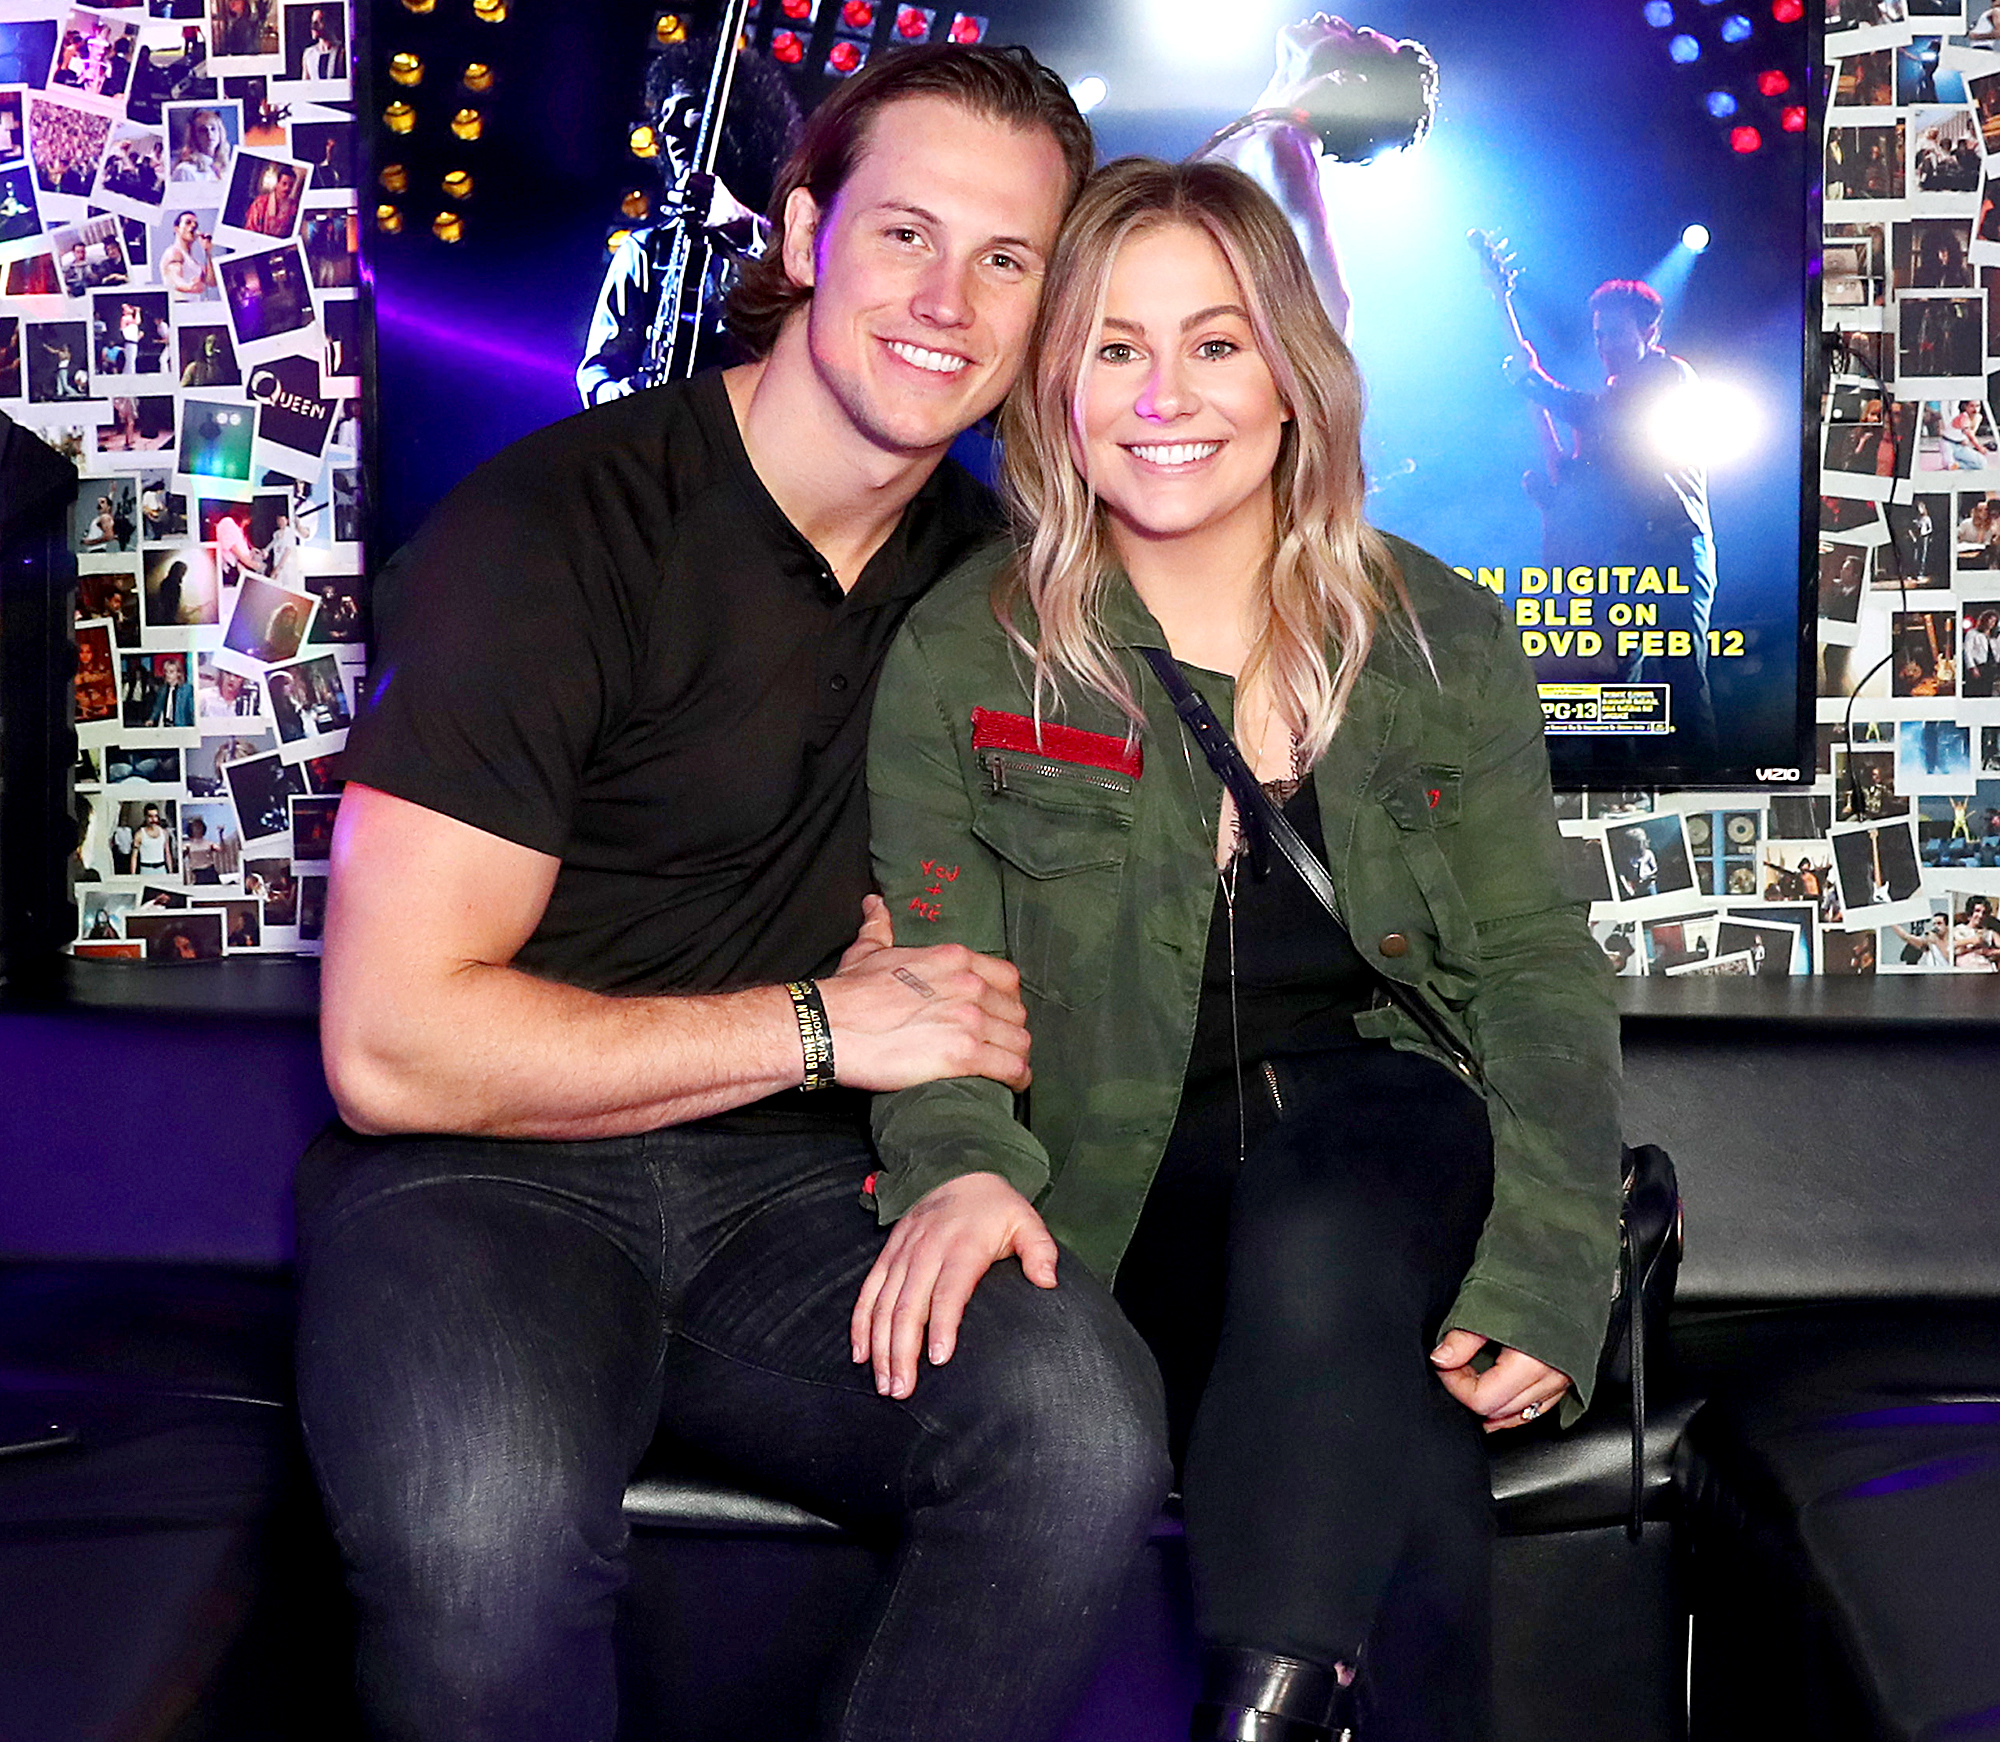 Shawn-Johnson-Keeping-Things-Romantic-With-Husband-Andrew-East